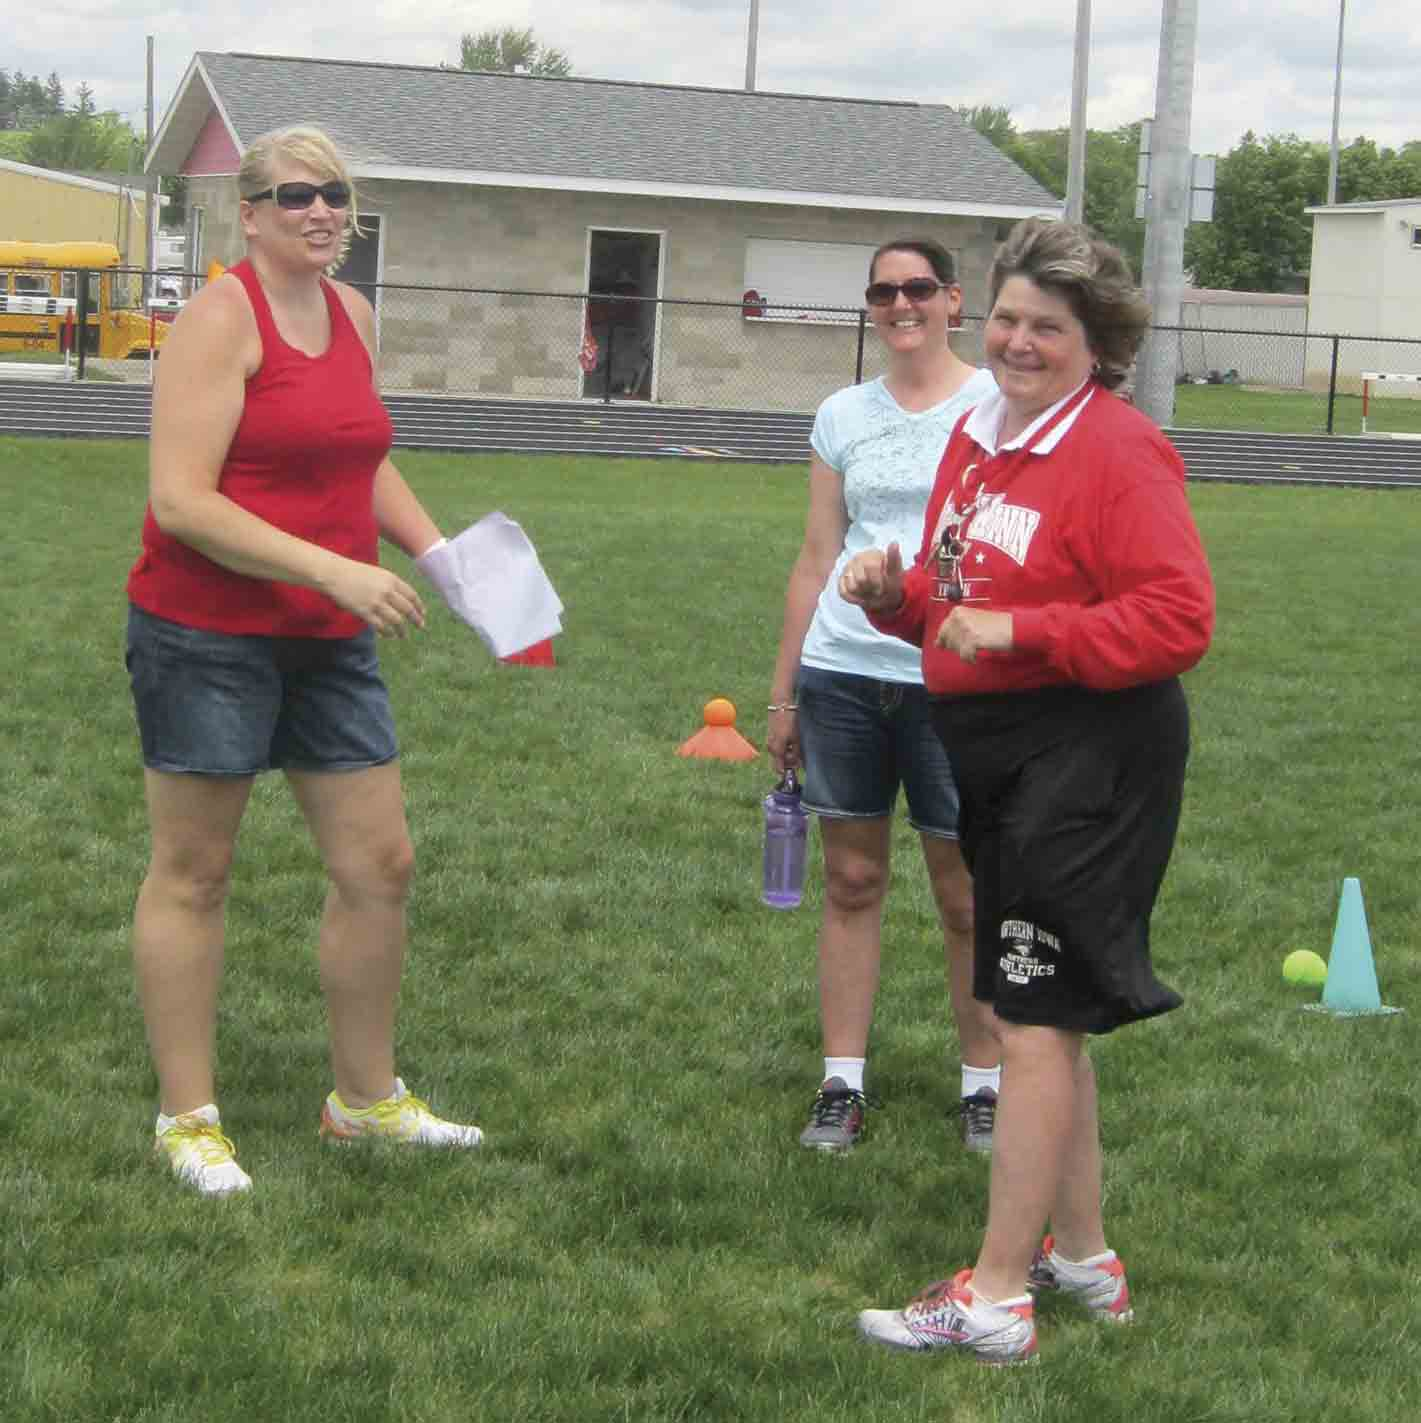 Sue Cook (right) helps organize a track and field event alongside Sherry Poshusta (left)and Mary Kleve at the South Winneshiek Athletic Complex in Calmar. Cook, who has taught at South Winneshiek since 2005, has been a teacher at several Iowa school districts for 39 total years. (submitted...